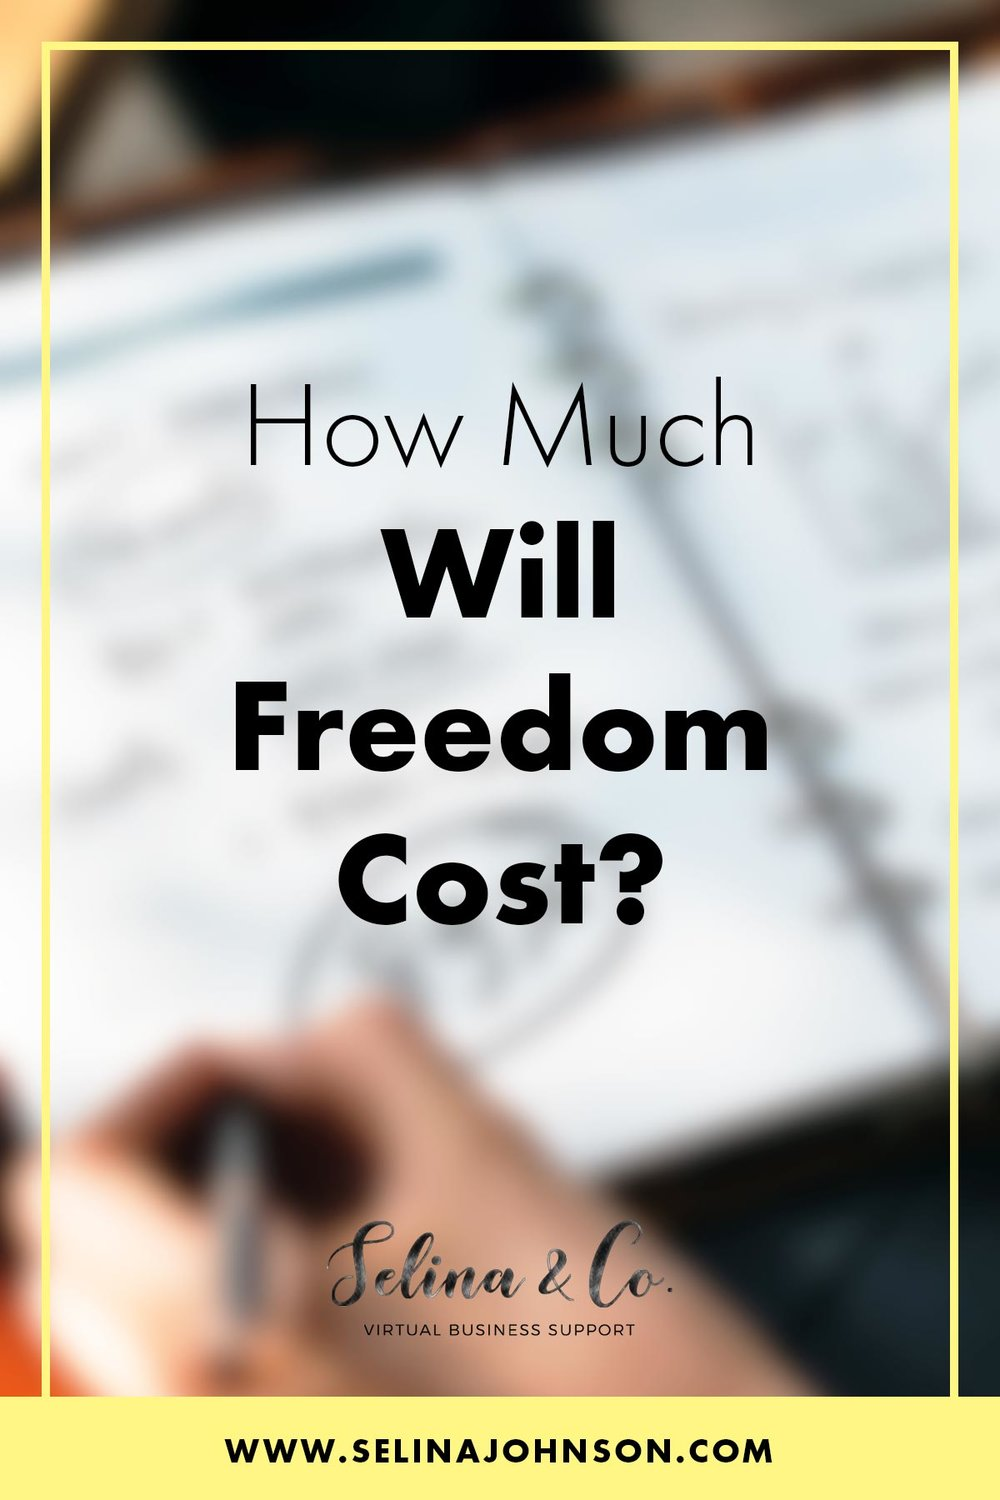 how-much-freedom-cost.jpg